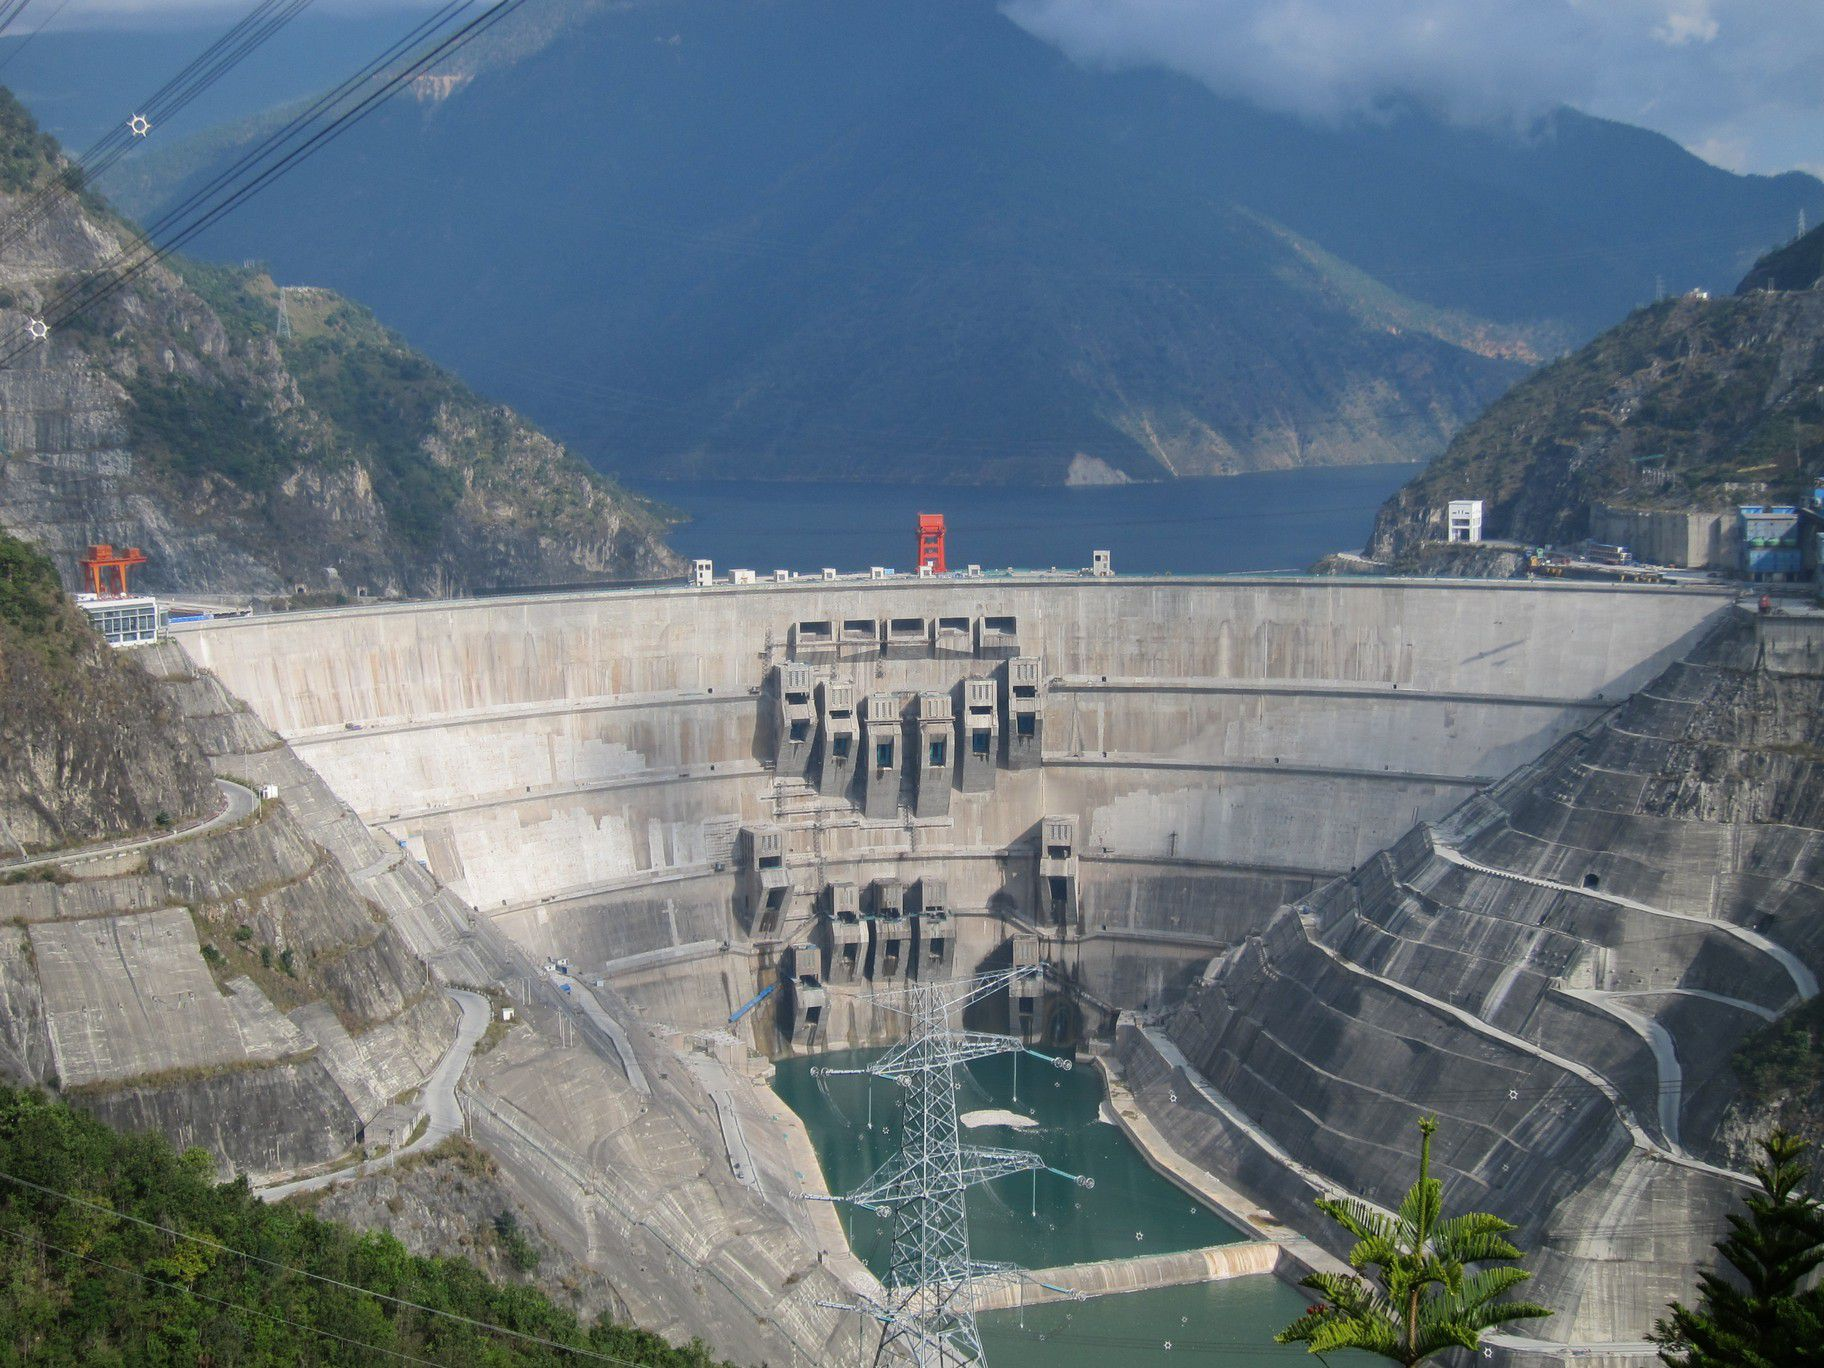 Xiaowan dam in China